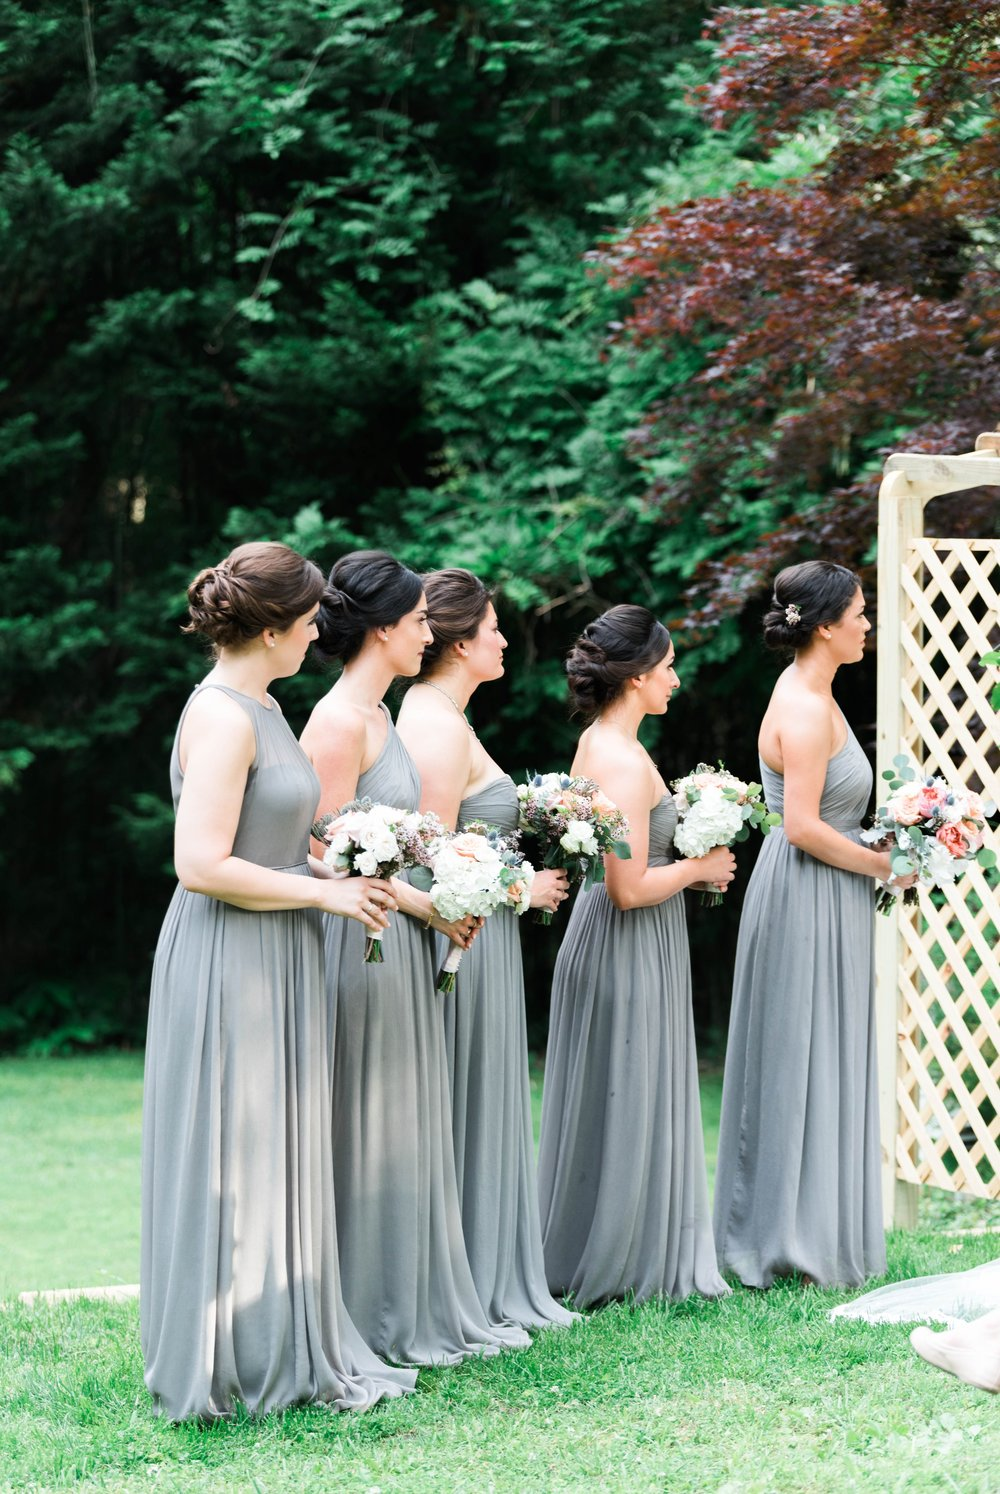 Williamsburgvawedding_backyardwedding_virginiaweddingphotographer_lynchburgweddingphotographer_PaulAliya 14.jpg